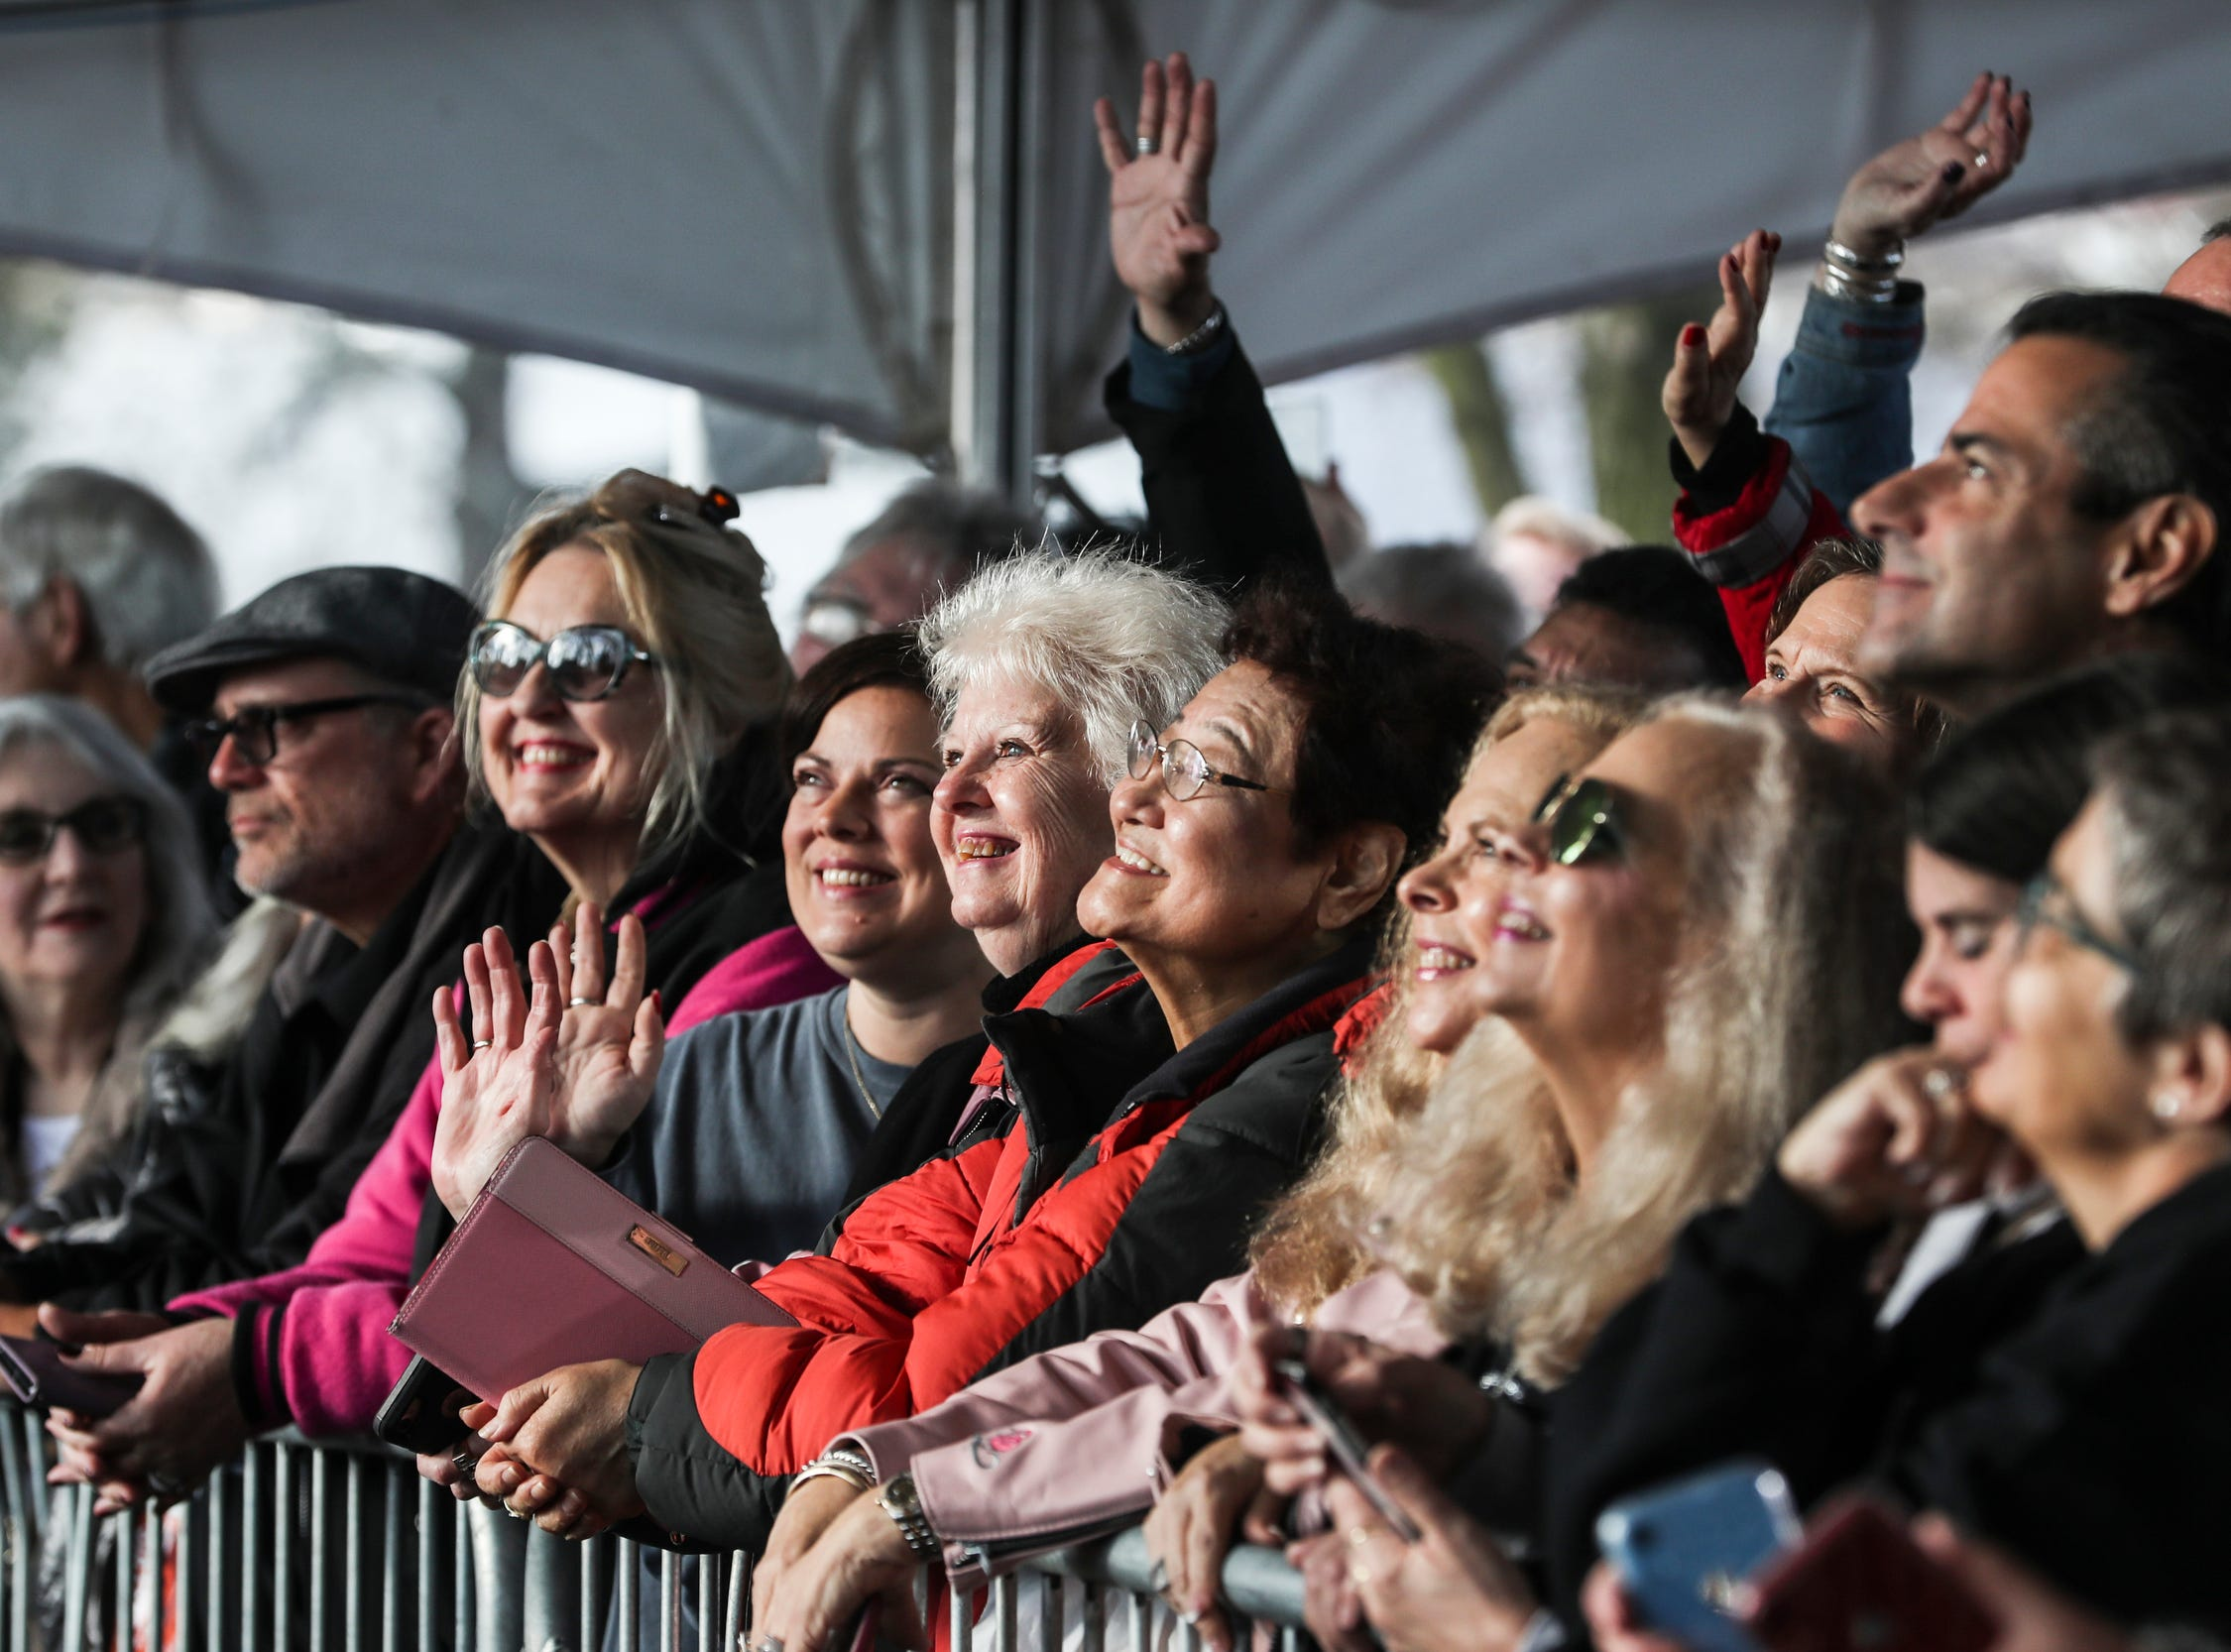 January 08 2019 - Fans smile and wave while celebrating Elvis' birthday on Graceland's north lawn during the Elvis Birthday Proclamation Ceremony on Tuesday. Tuesday would have been Elvis' 84th birthday.